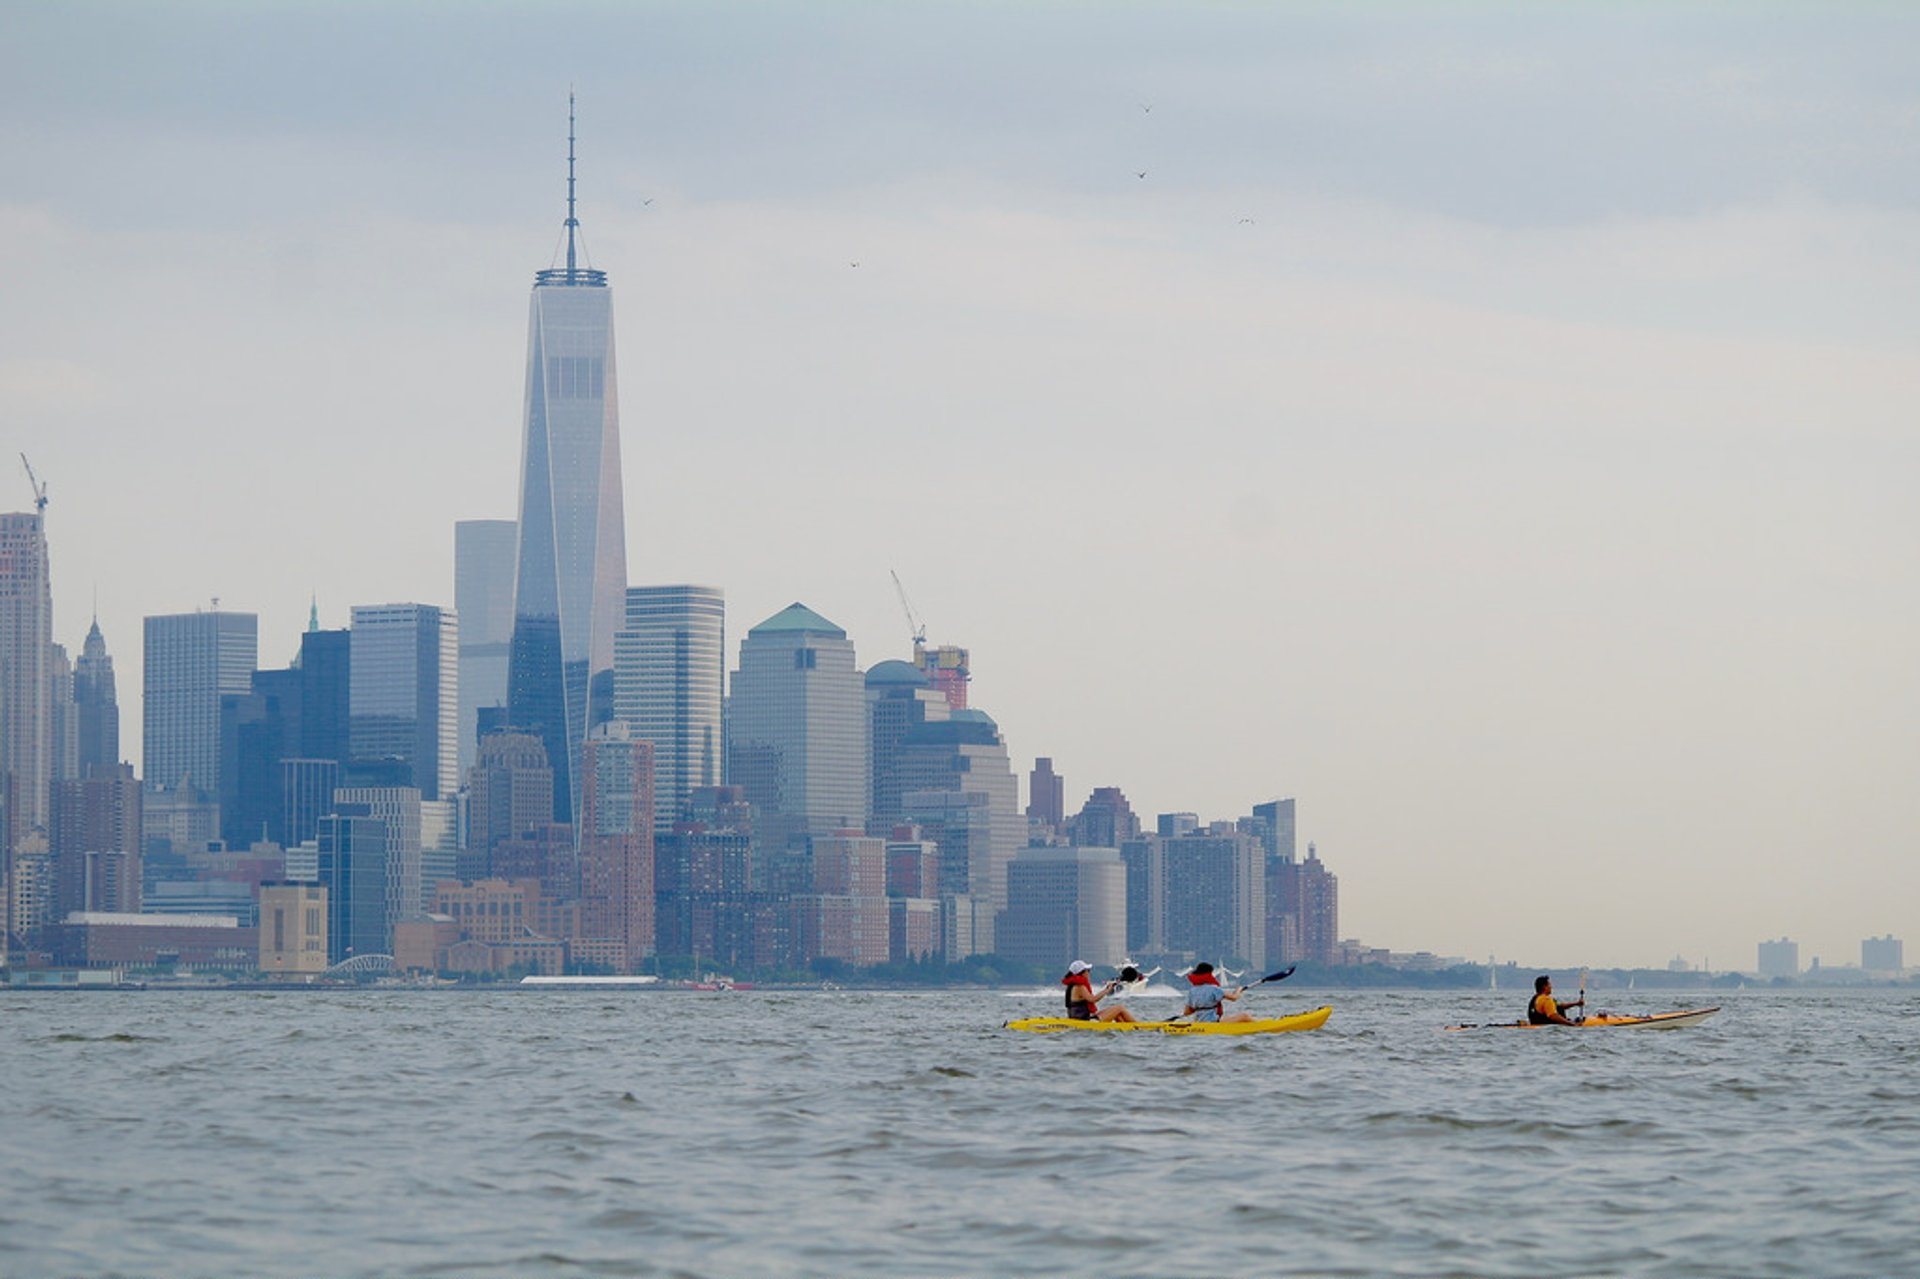 Kayaking on the Hudson in New York - Best Season